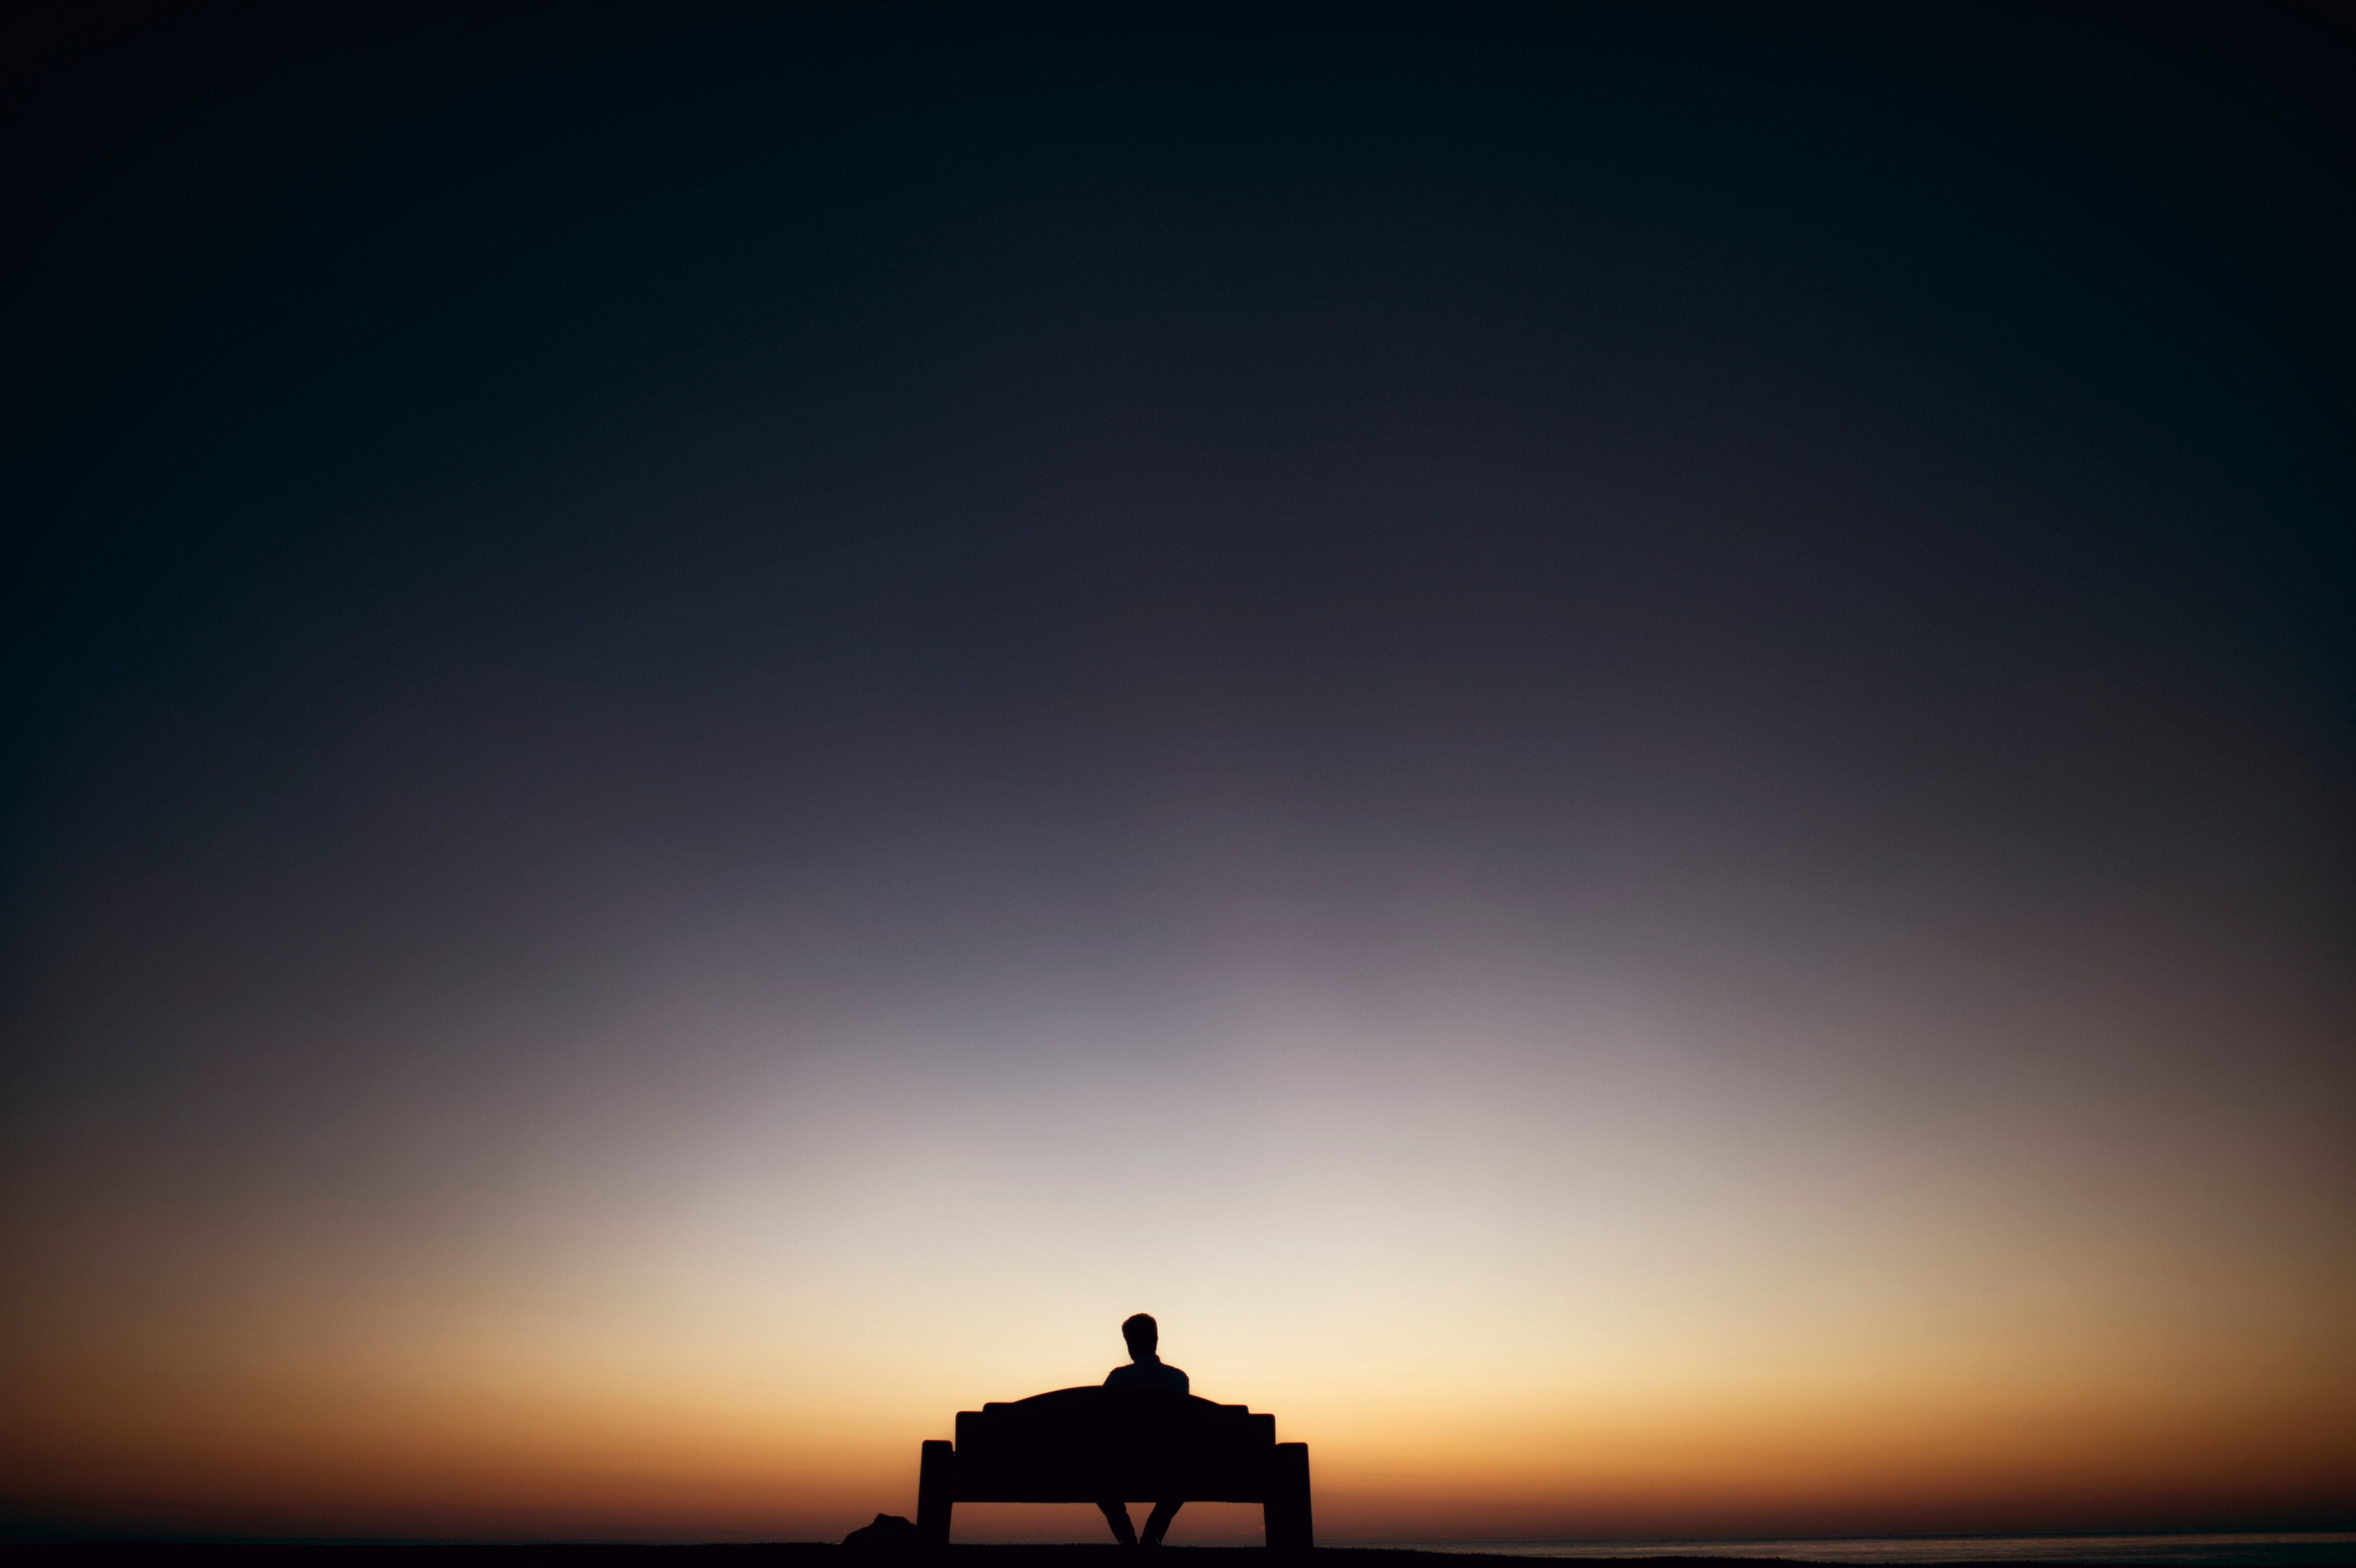 Silhouette of person sitting alone on a bench in the distance